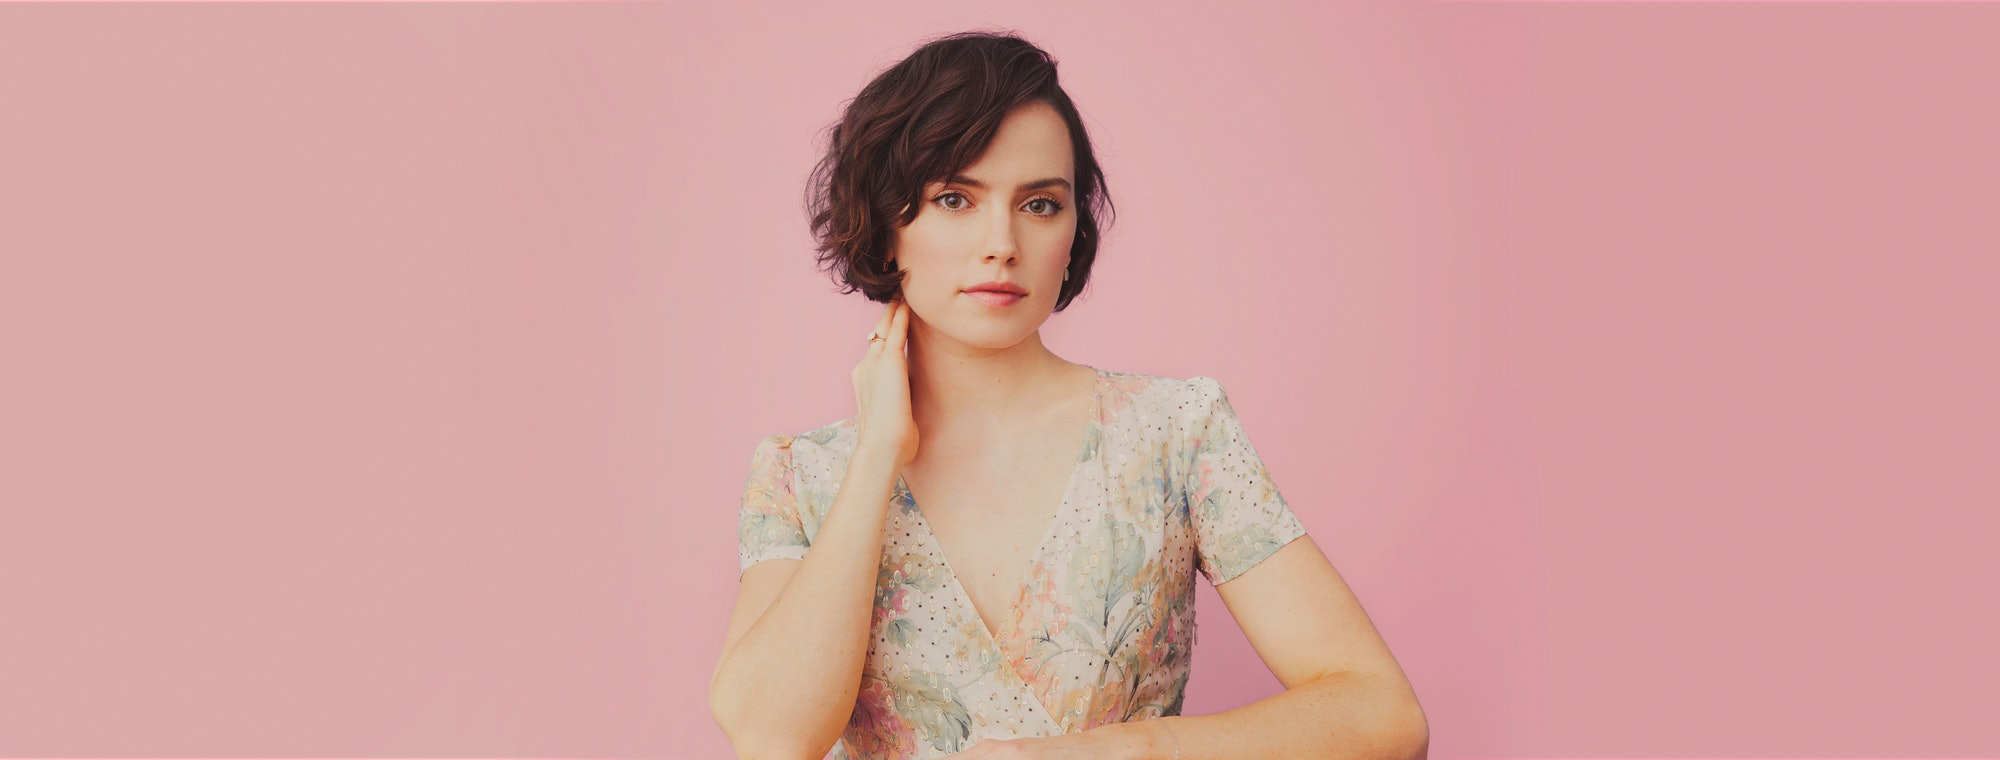 233527380f Daisy Ridley On Social Media Silence, Fan Backlash, & Why This Is Just A Job